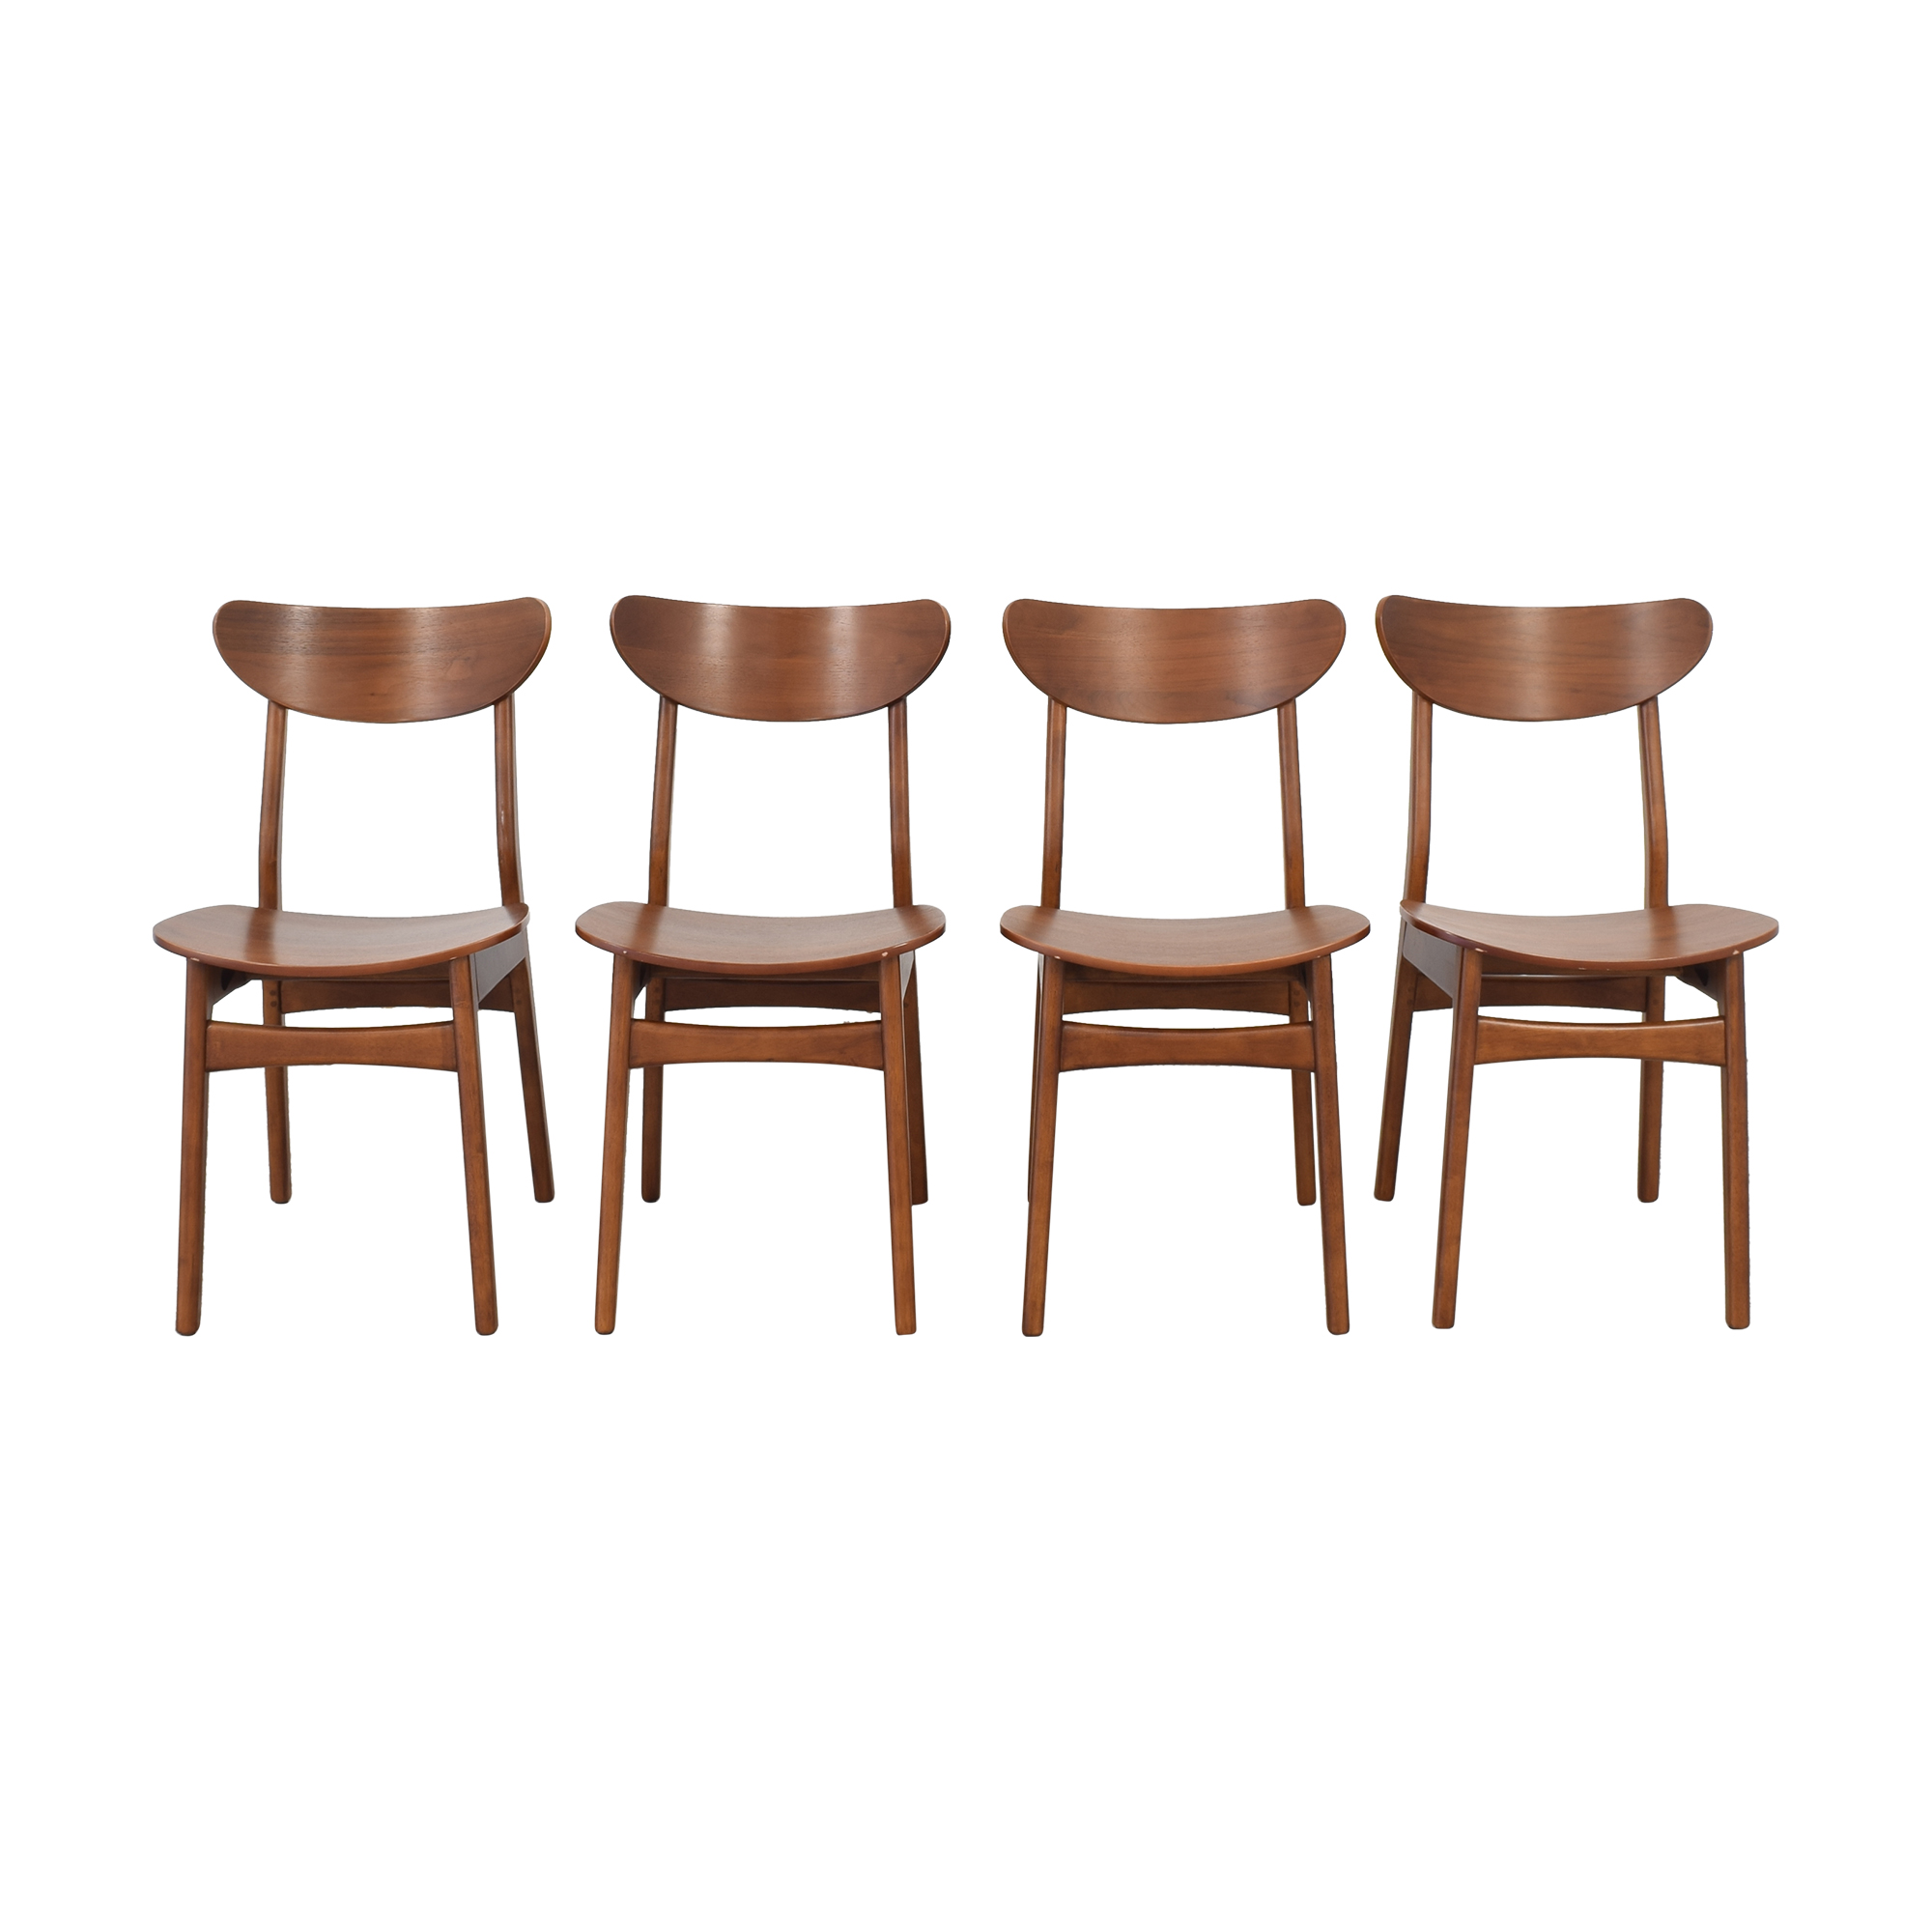 West Elm West Elm Classic Cafe Dining Chairs price